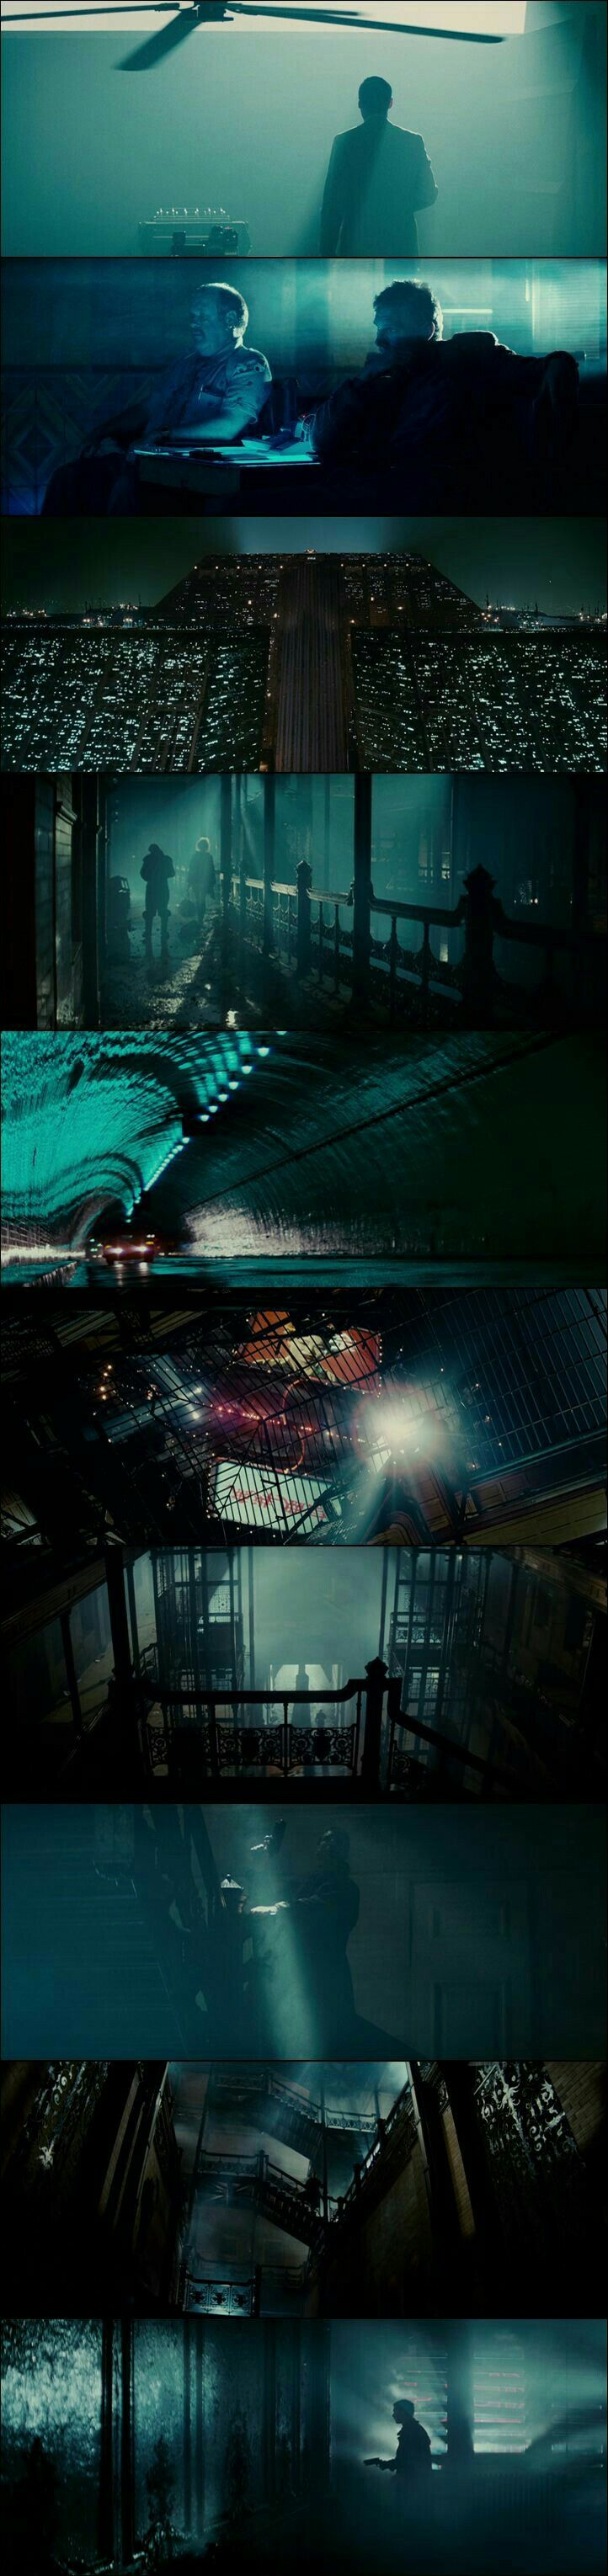 Blade Runner (1982) beautiful scenes from this magnificent movie.